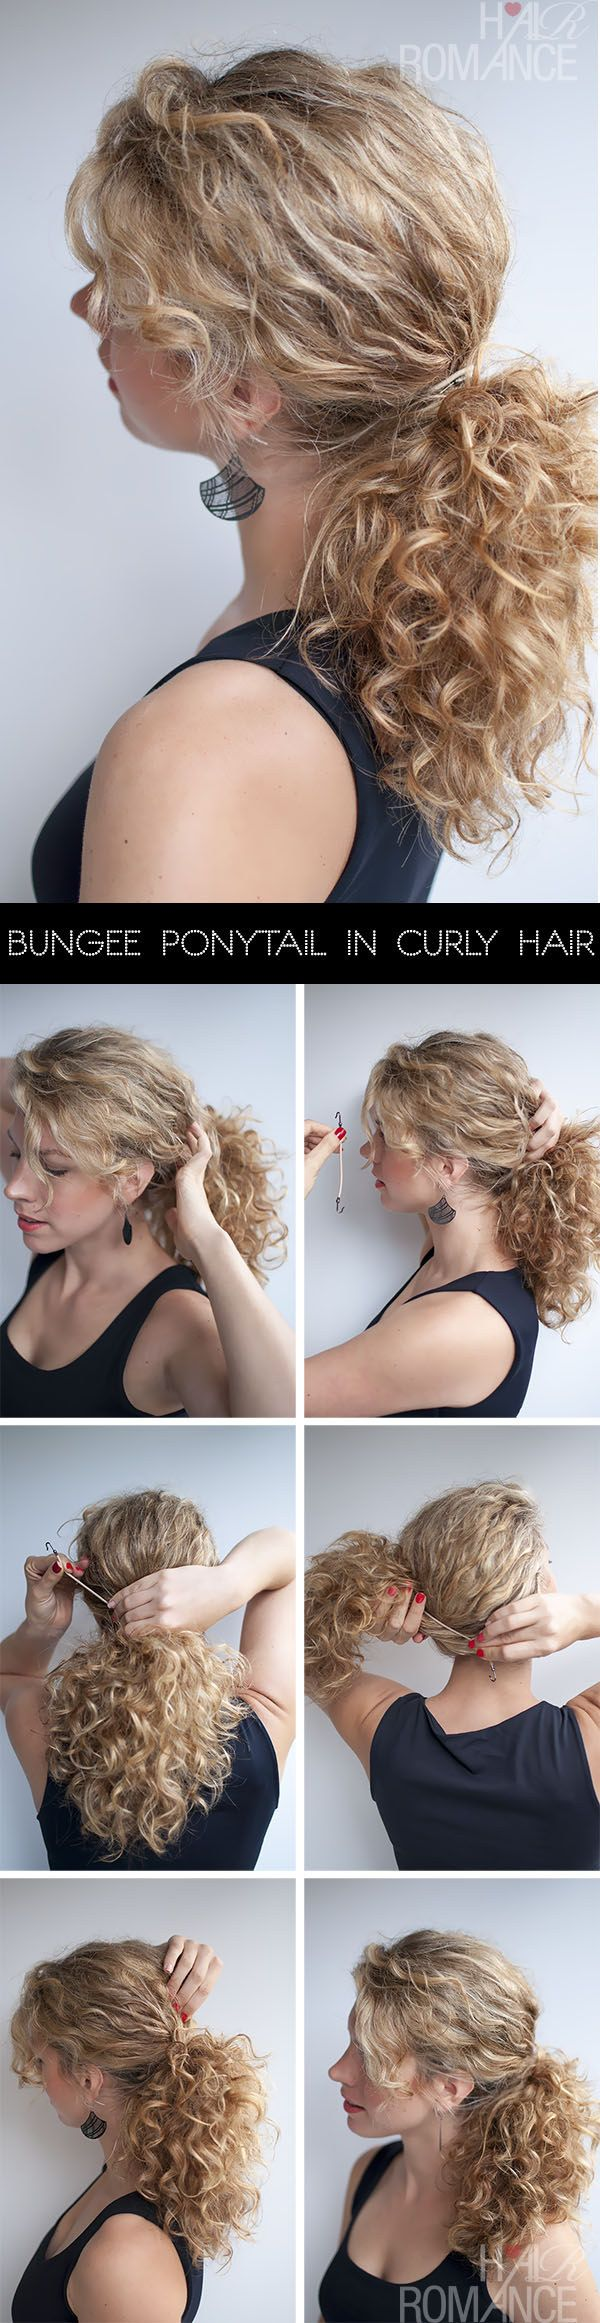 best curly hair images on pinterest curly hair natural curls